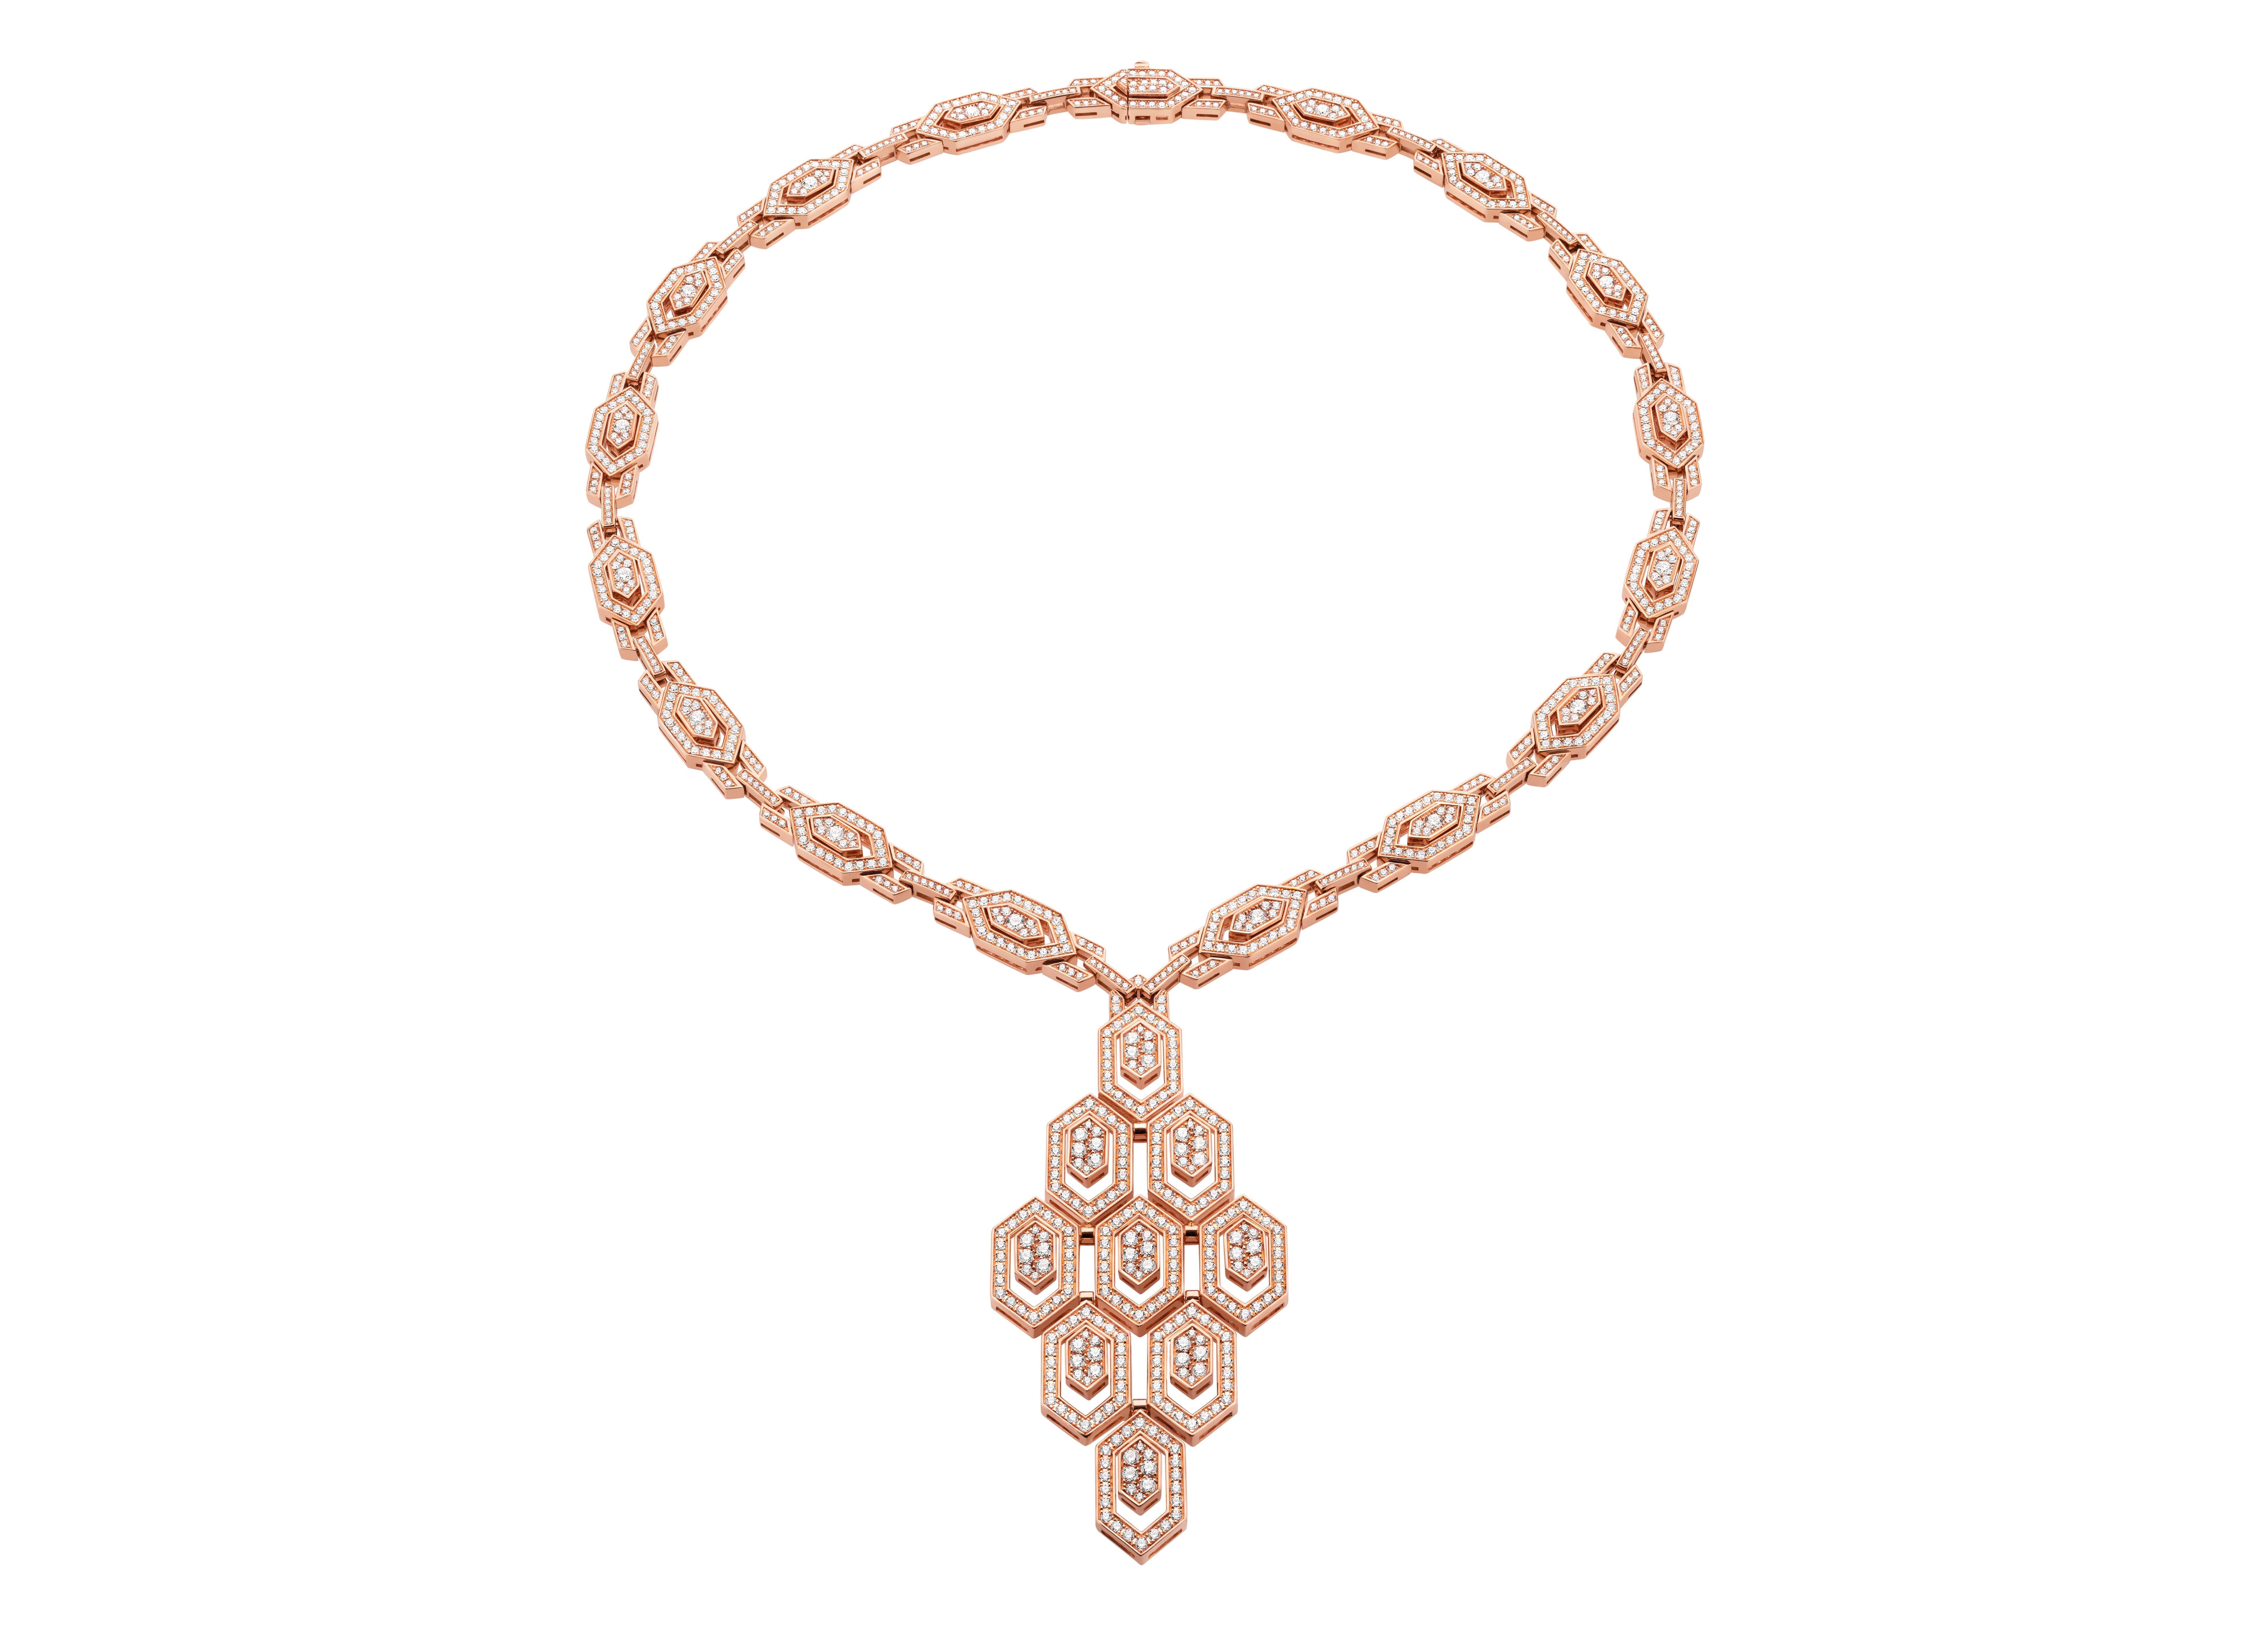 BVLGARI Serpenti 18 KT Rose Gold Necklace